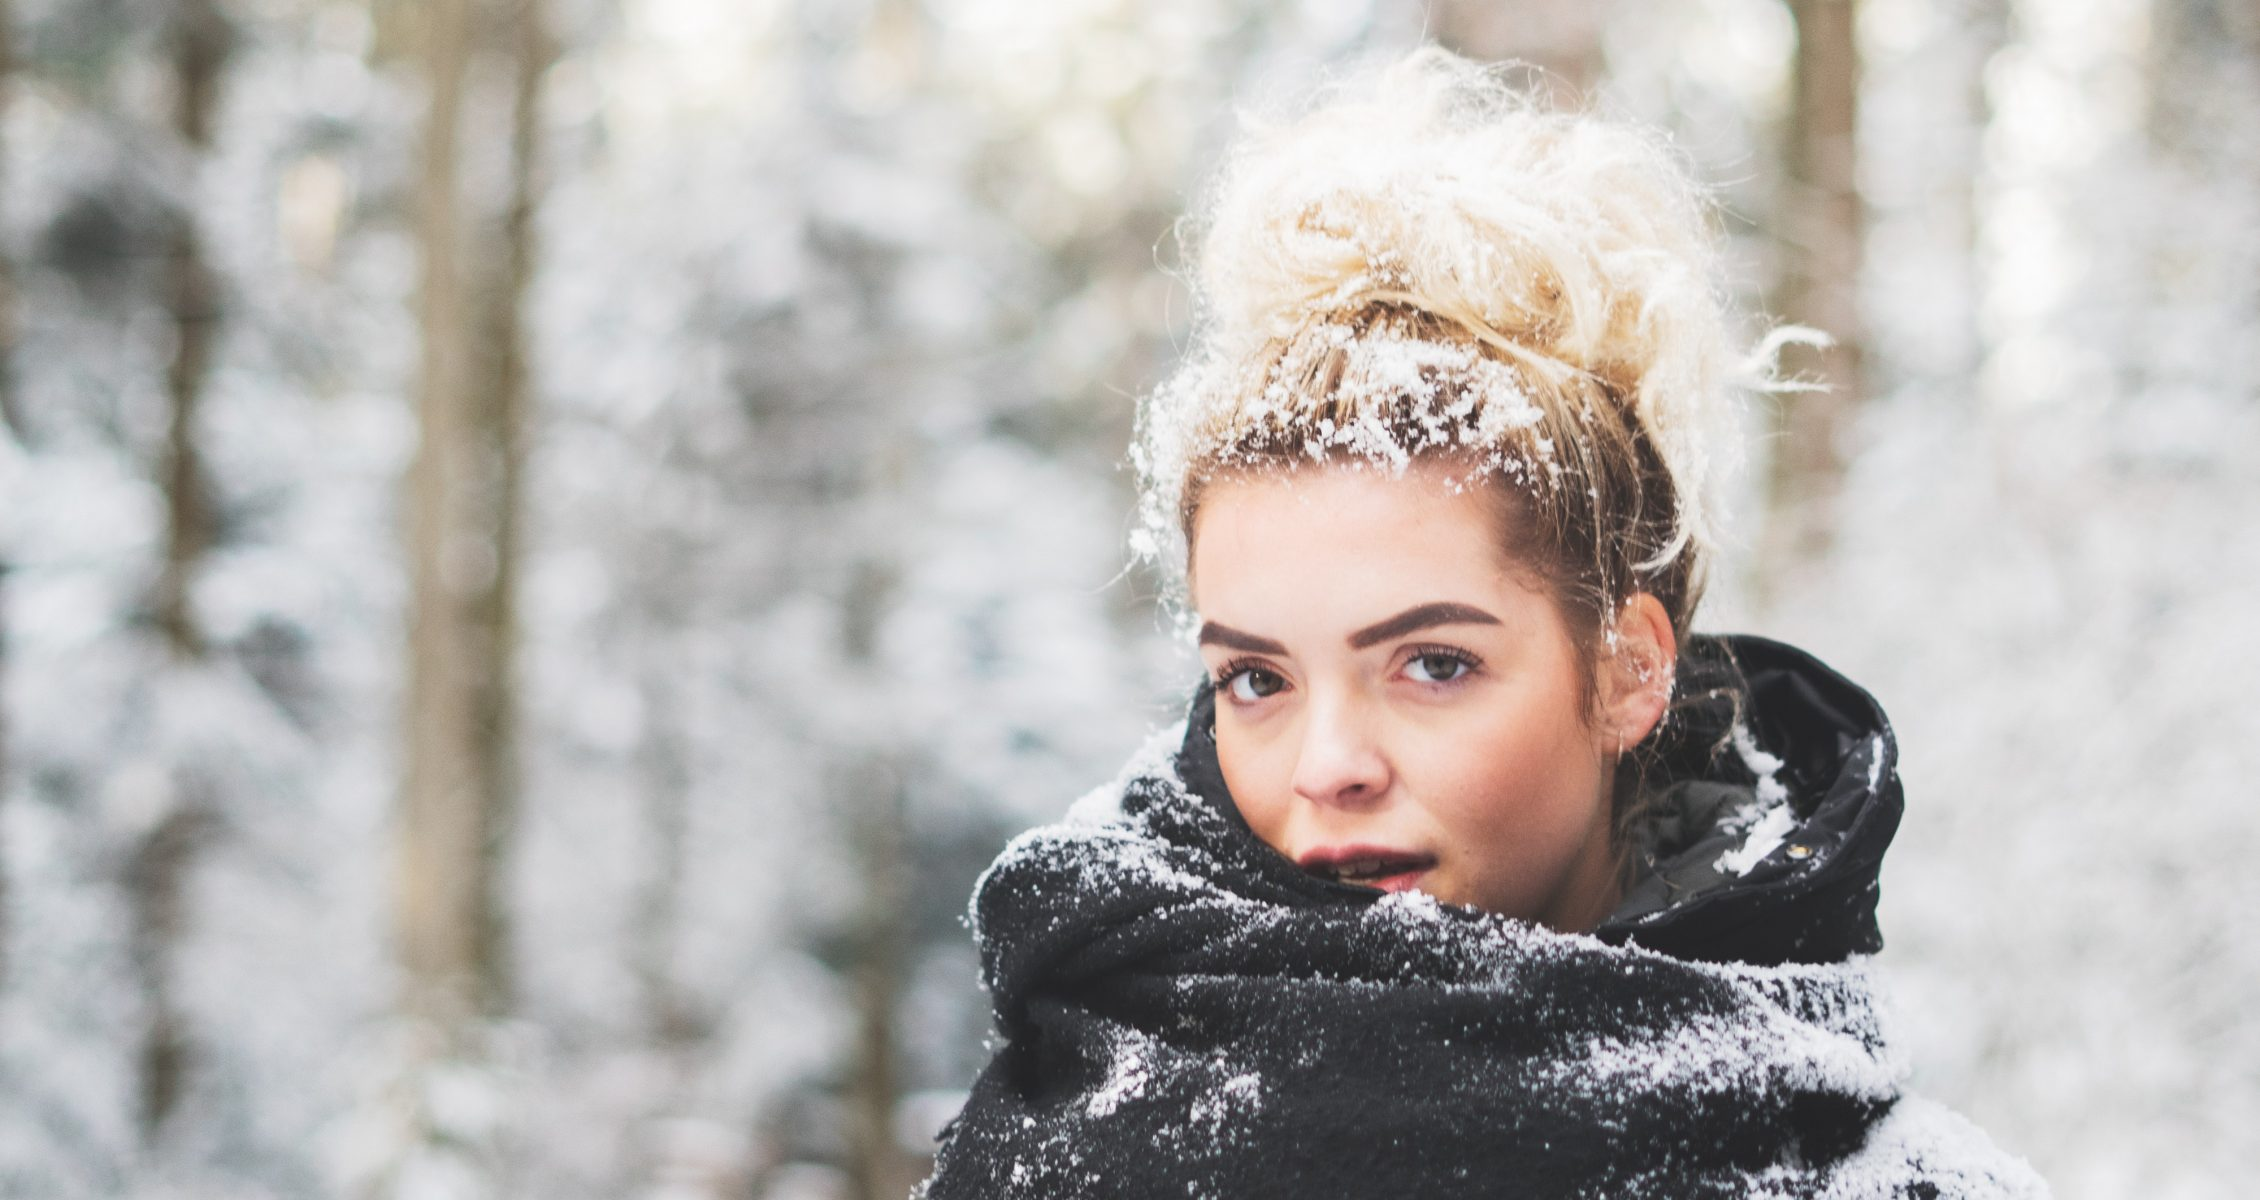 A blonde woman wearing a bun has snow on her hair and is standing in the snow covered woods wearing a large black scarf covered in white snow